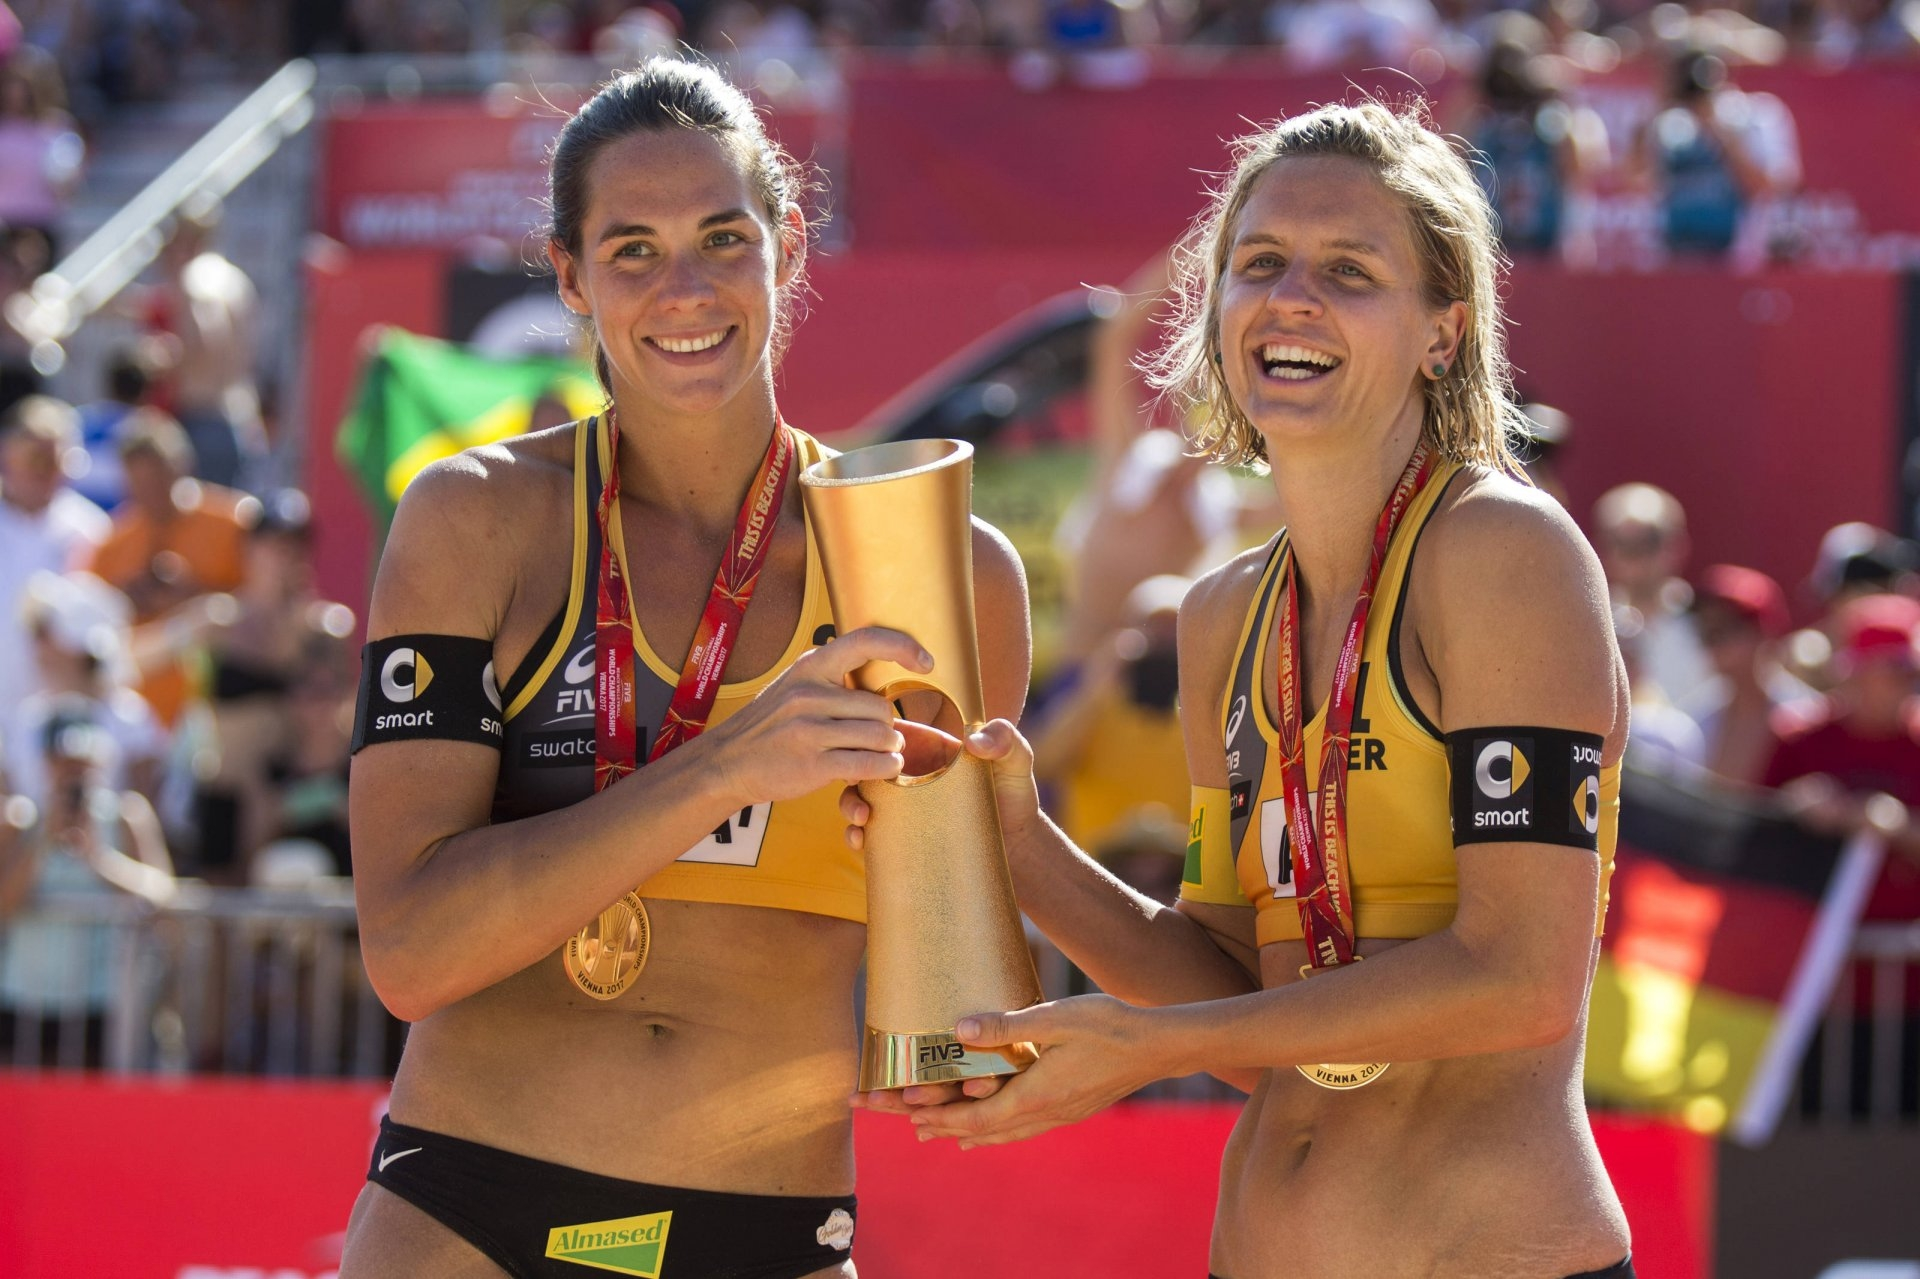 Kira Walkenhorst (left) and Laura Ludwig (right) are one of the most feared teams in the world. Photocredit: Michael Kunkel